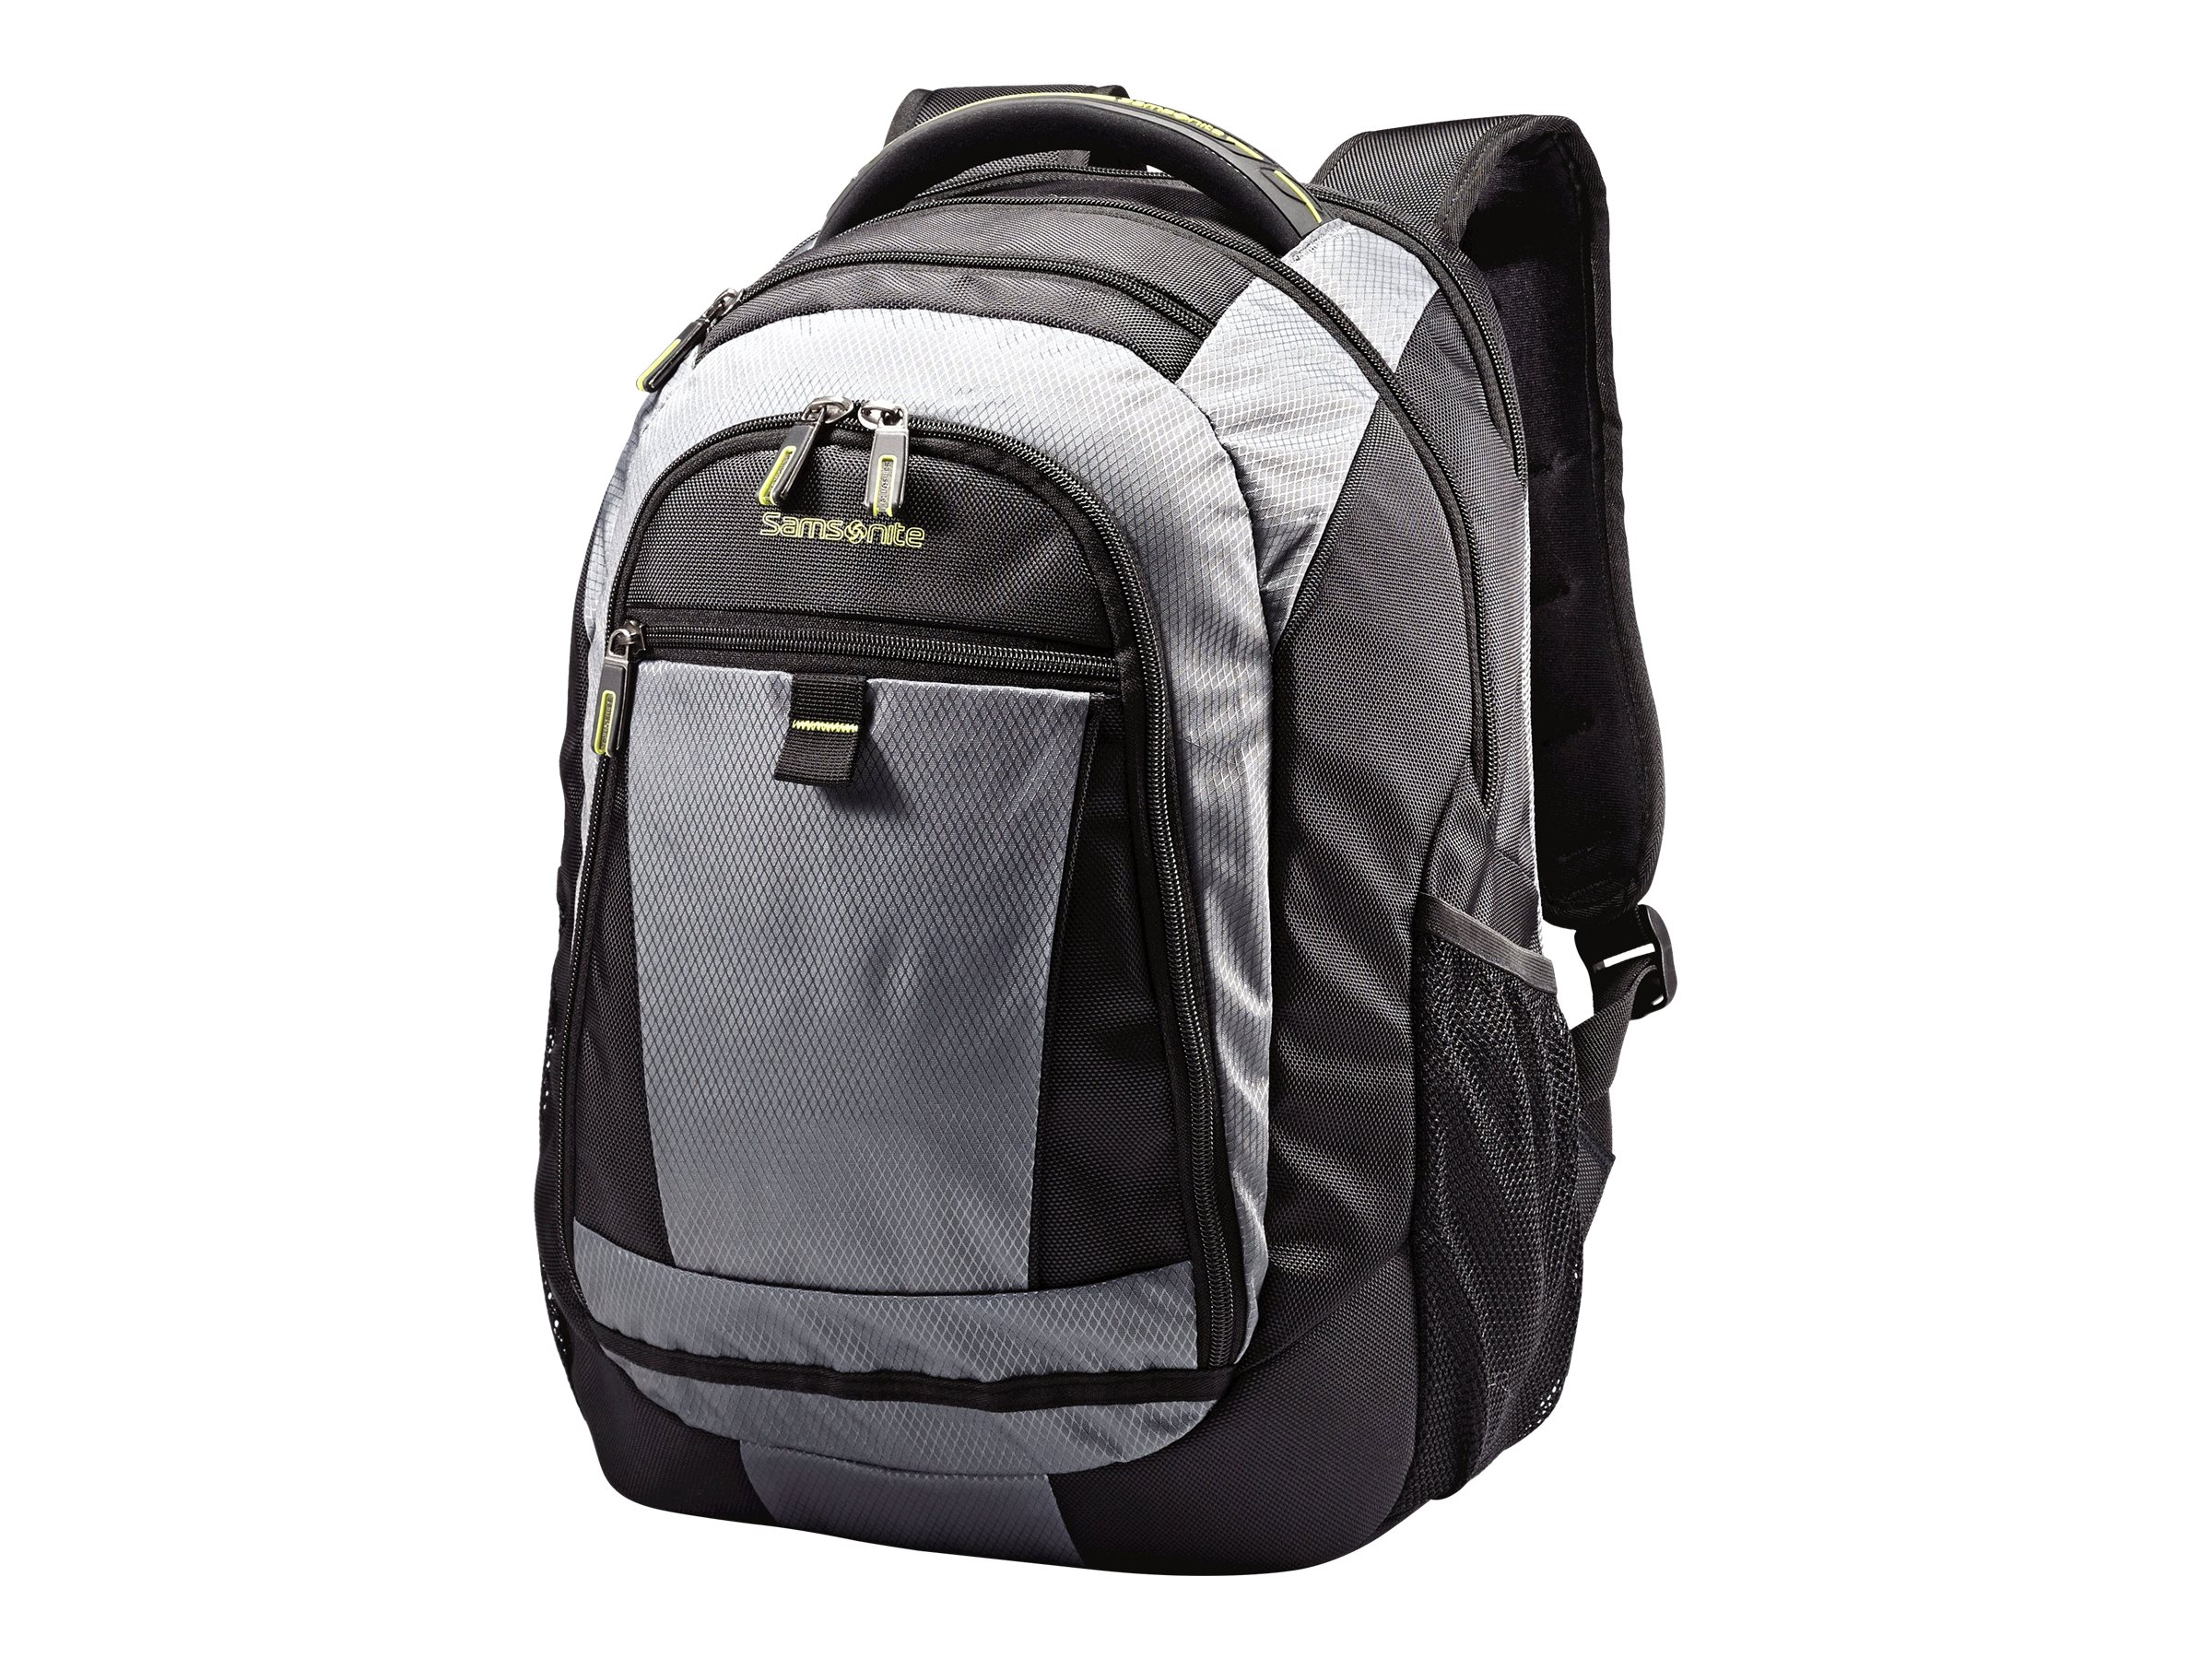 Stephen Gould Tectonic 2 Medium Backpack 15.6, Black Lime, 62364-2606